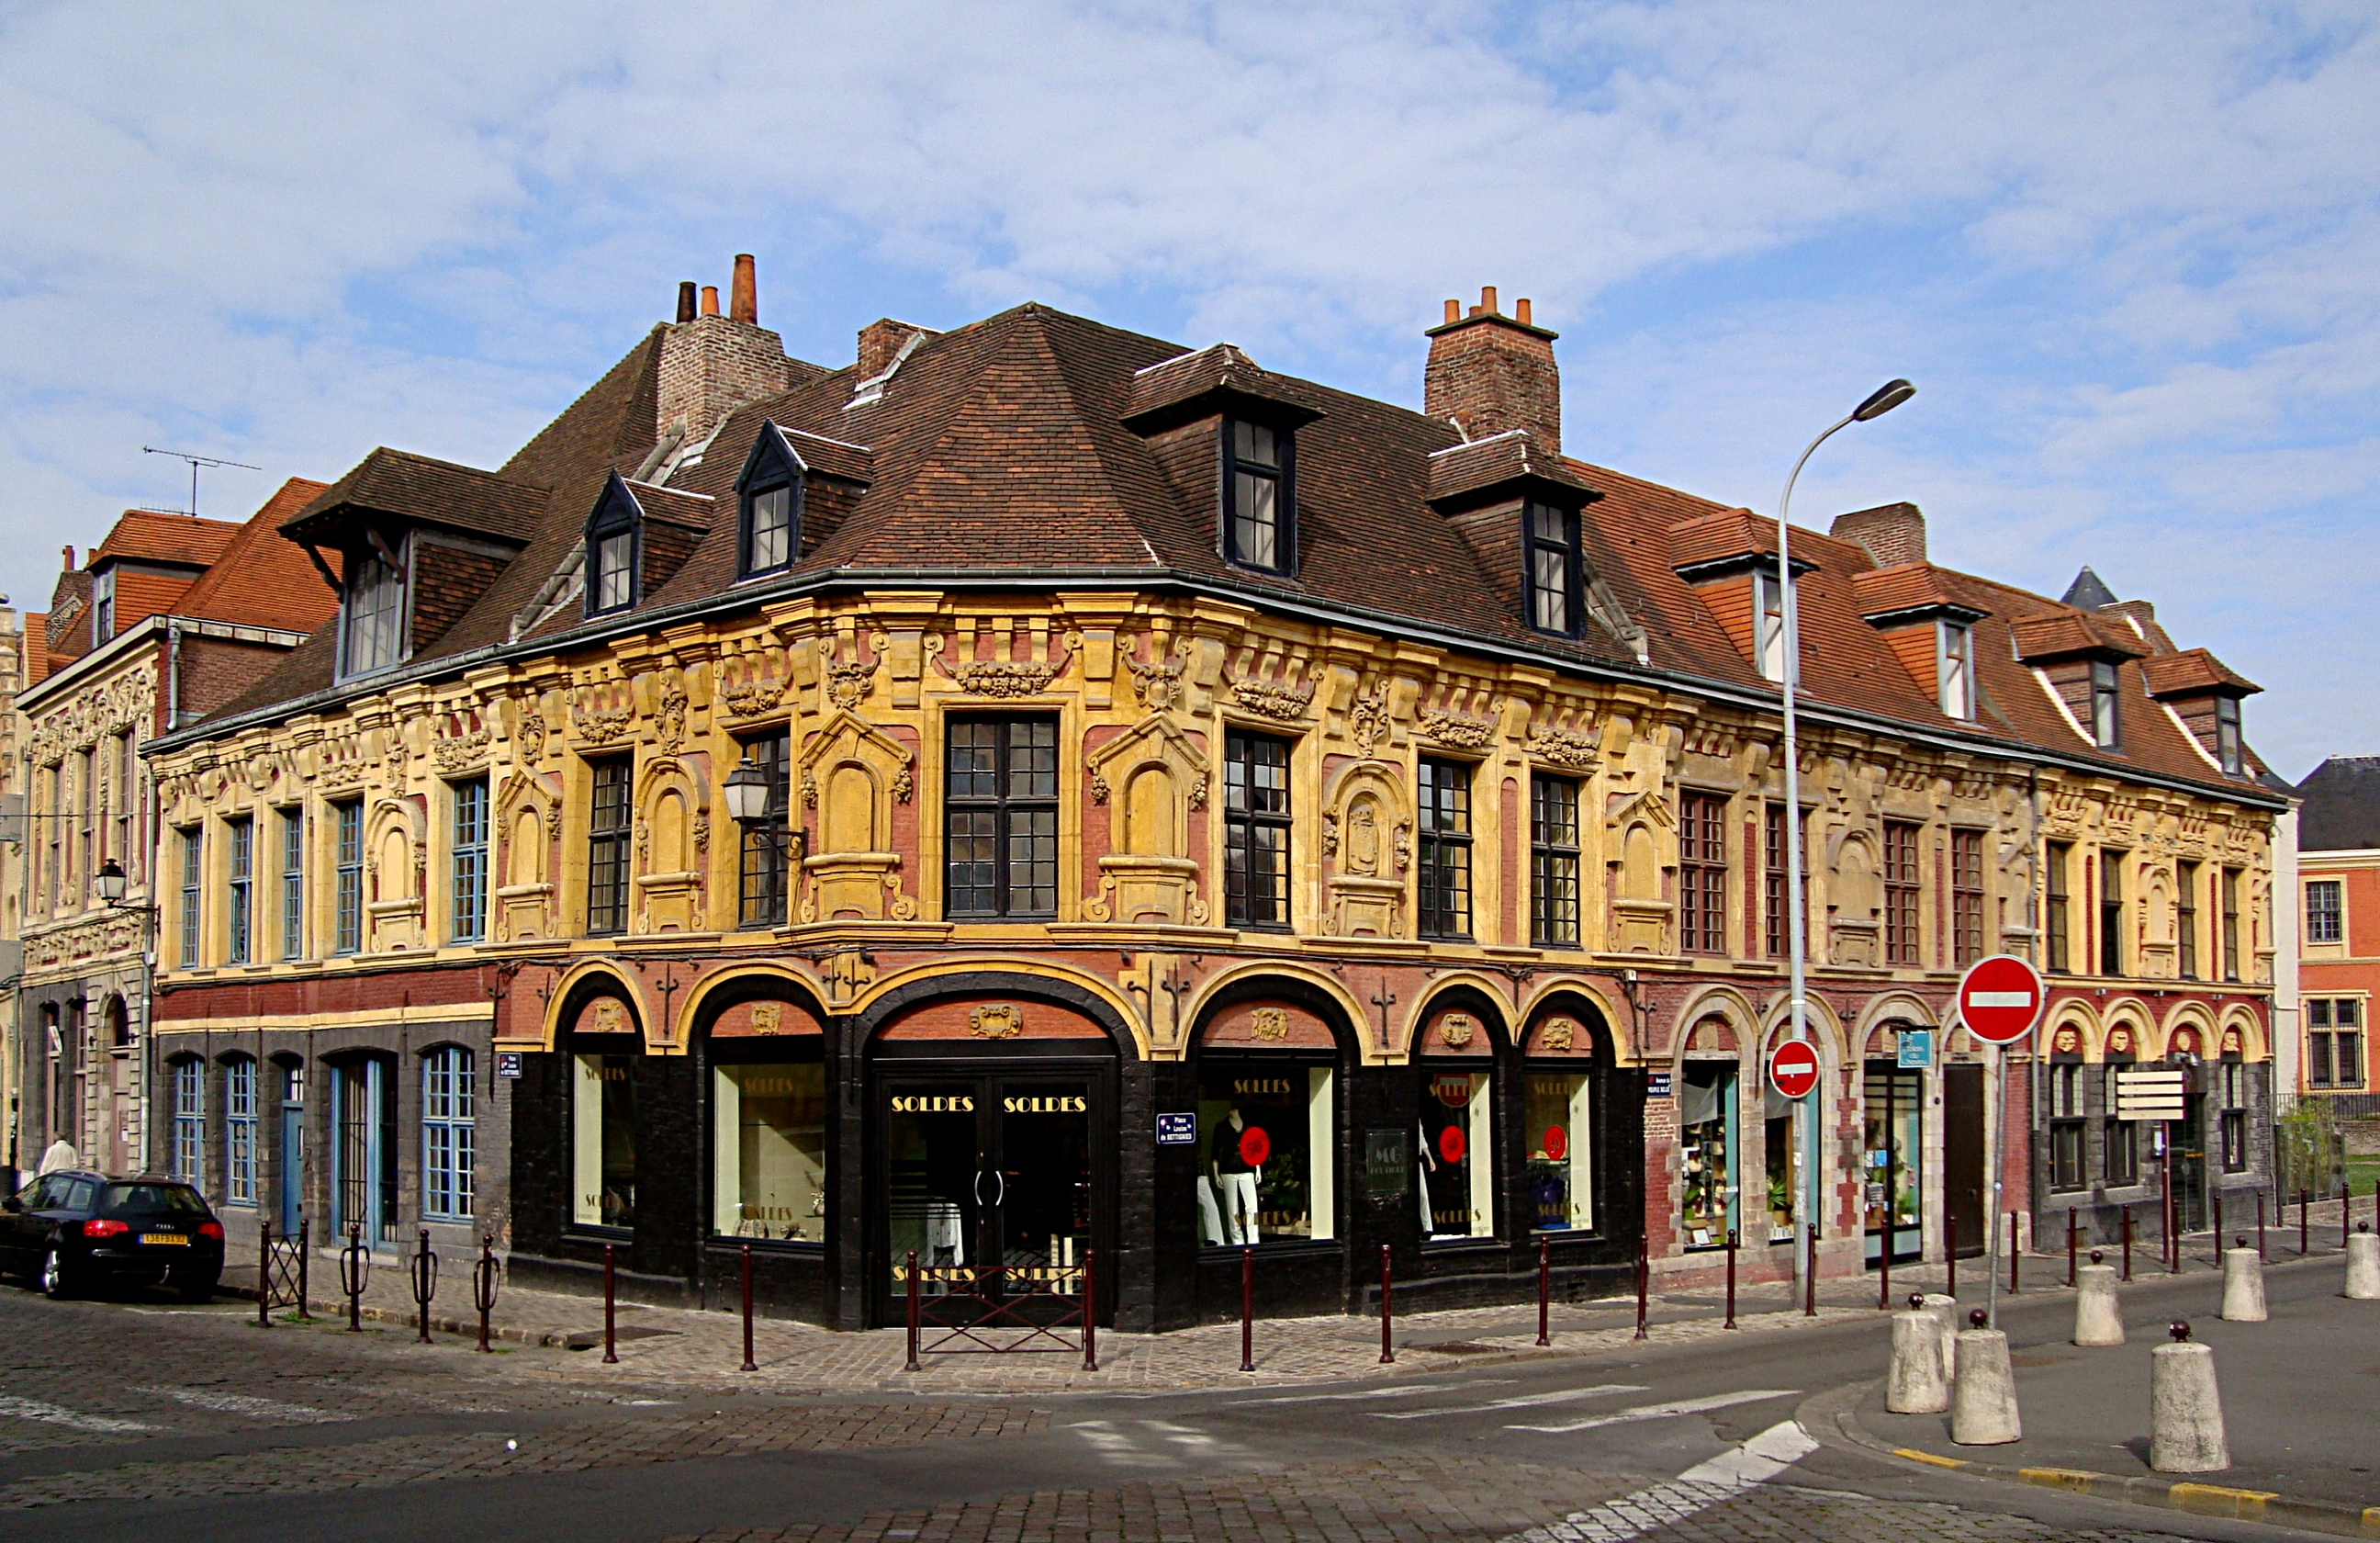 https://upload.wikimedia.org/wikipedia/commons/9/9f/Lille_maison_de_gille_le_boe.JPG